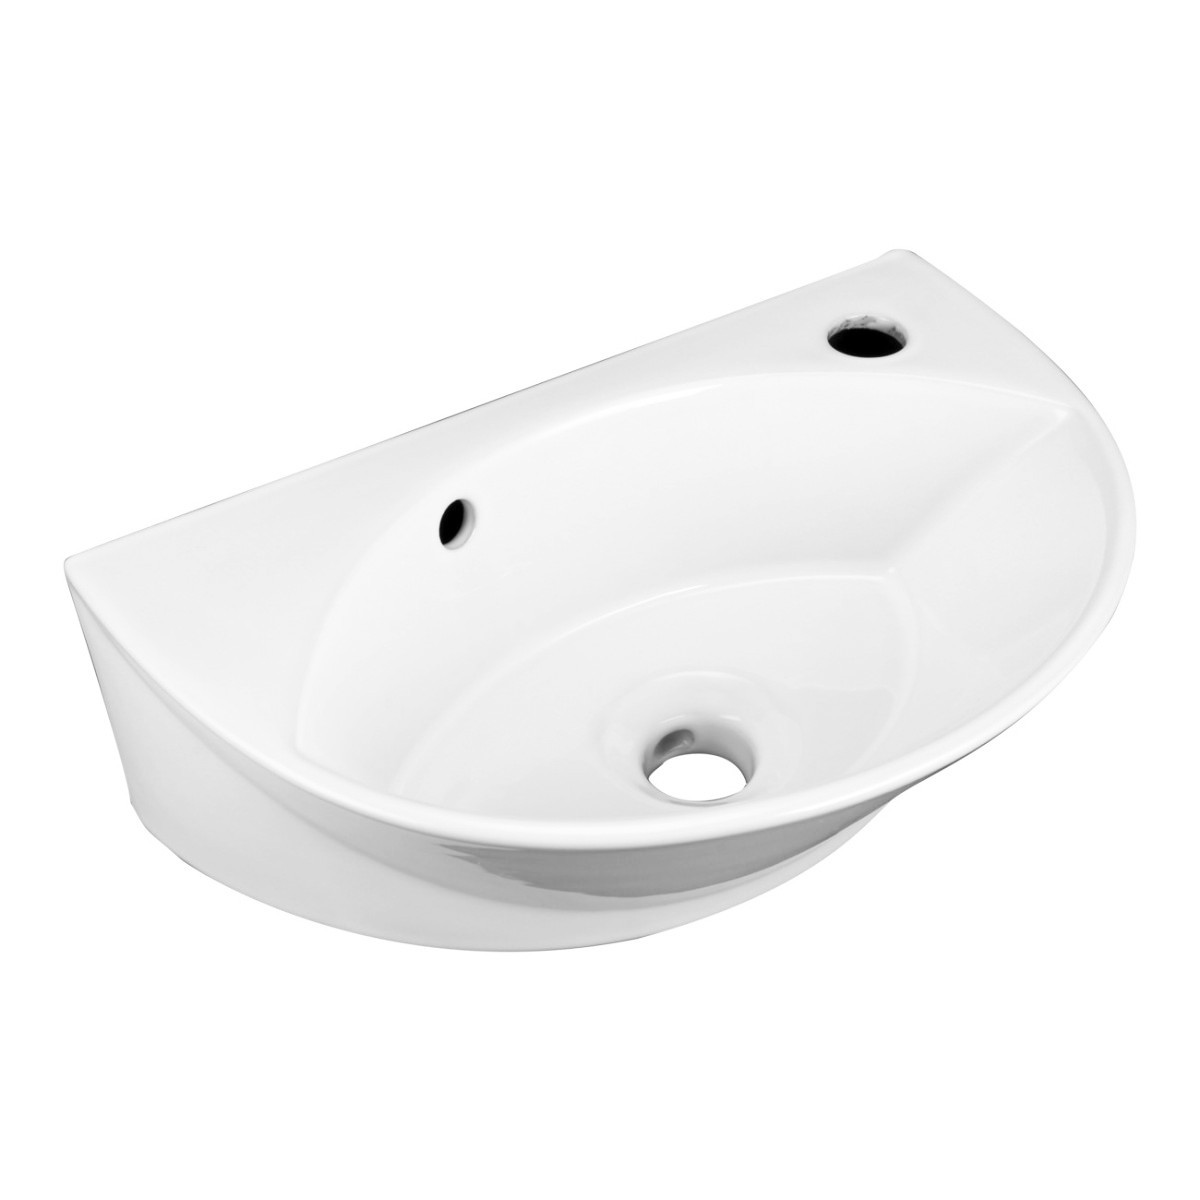 Small white wall mount bathroom vessel sink with single faucet hole overflow for Compact sinks for small bathrooms